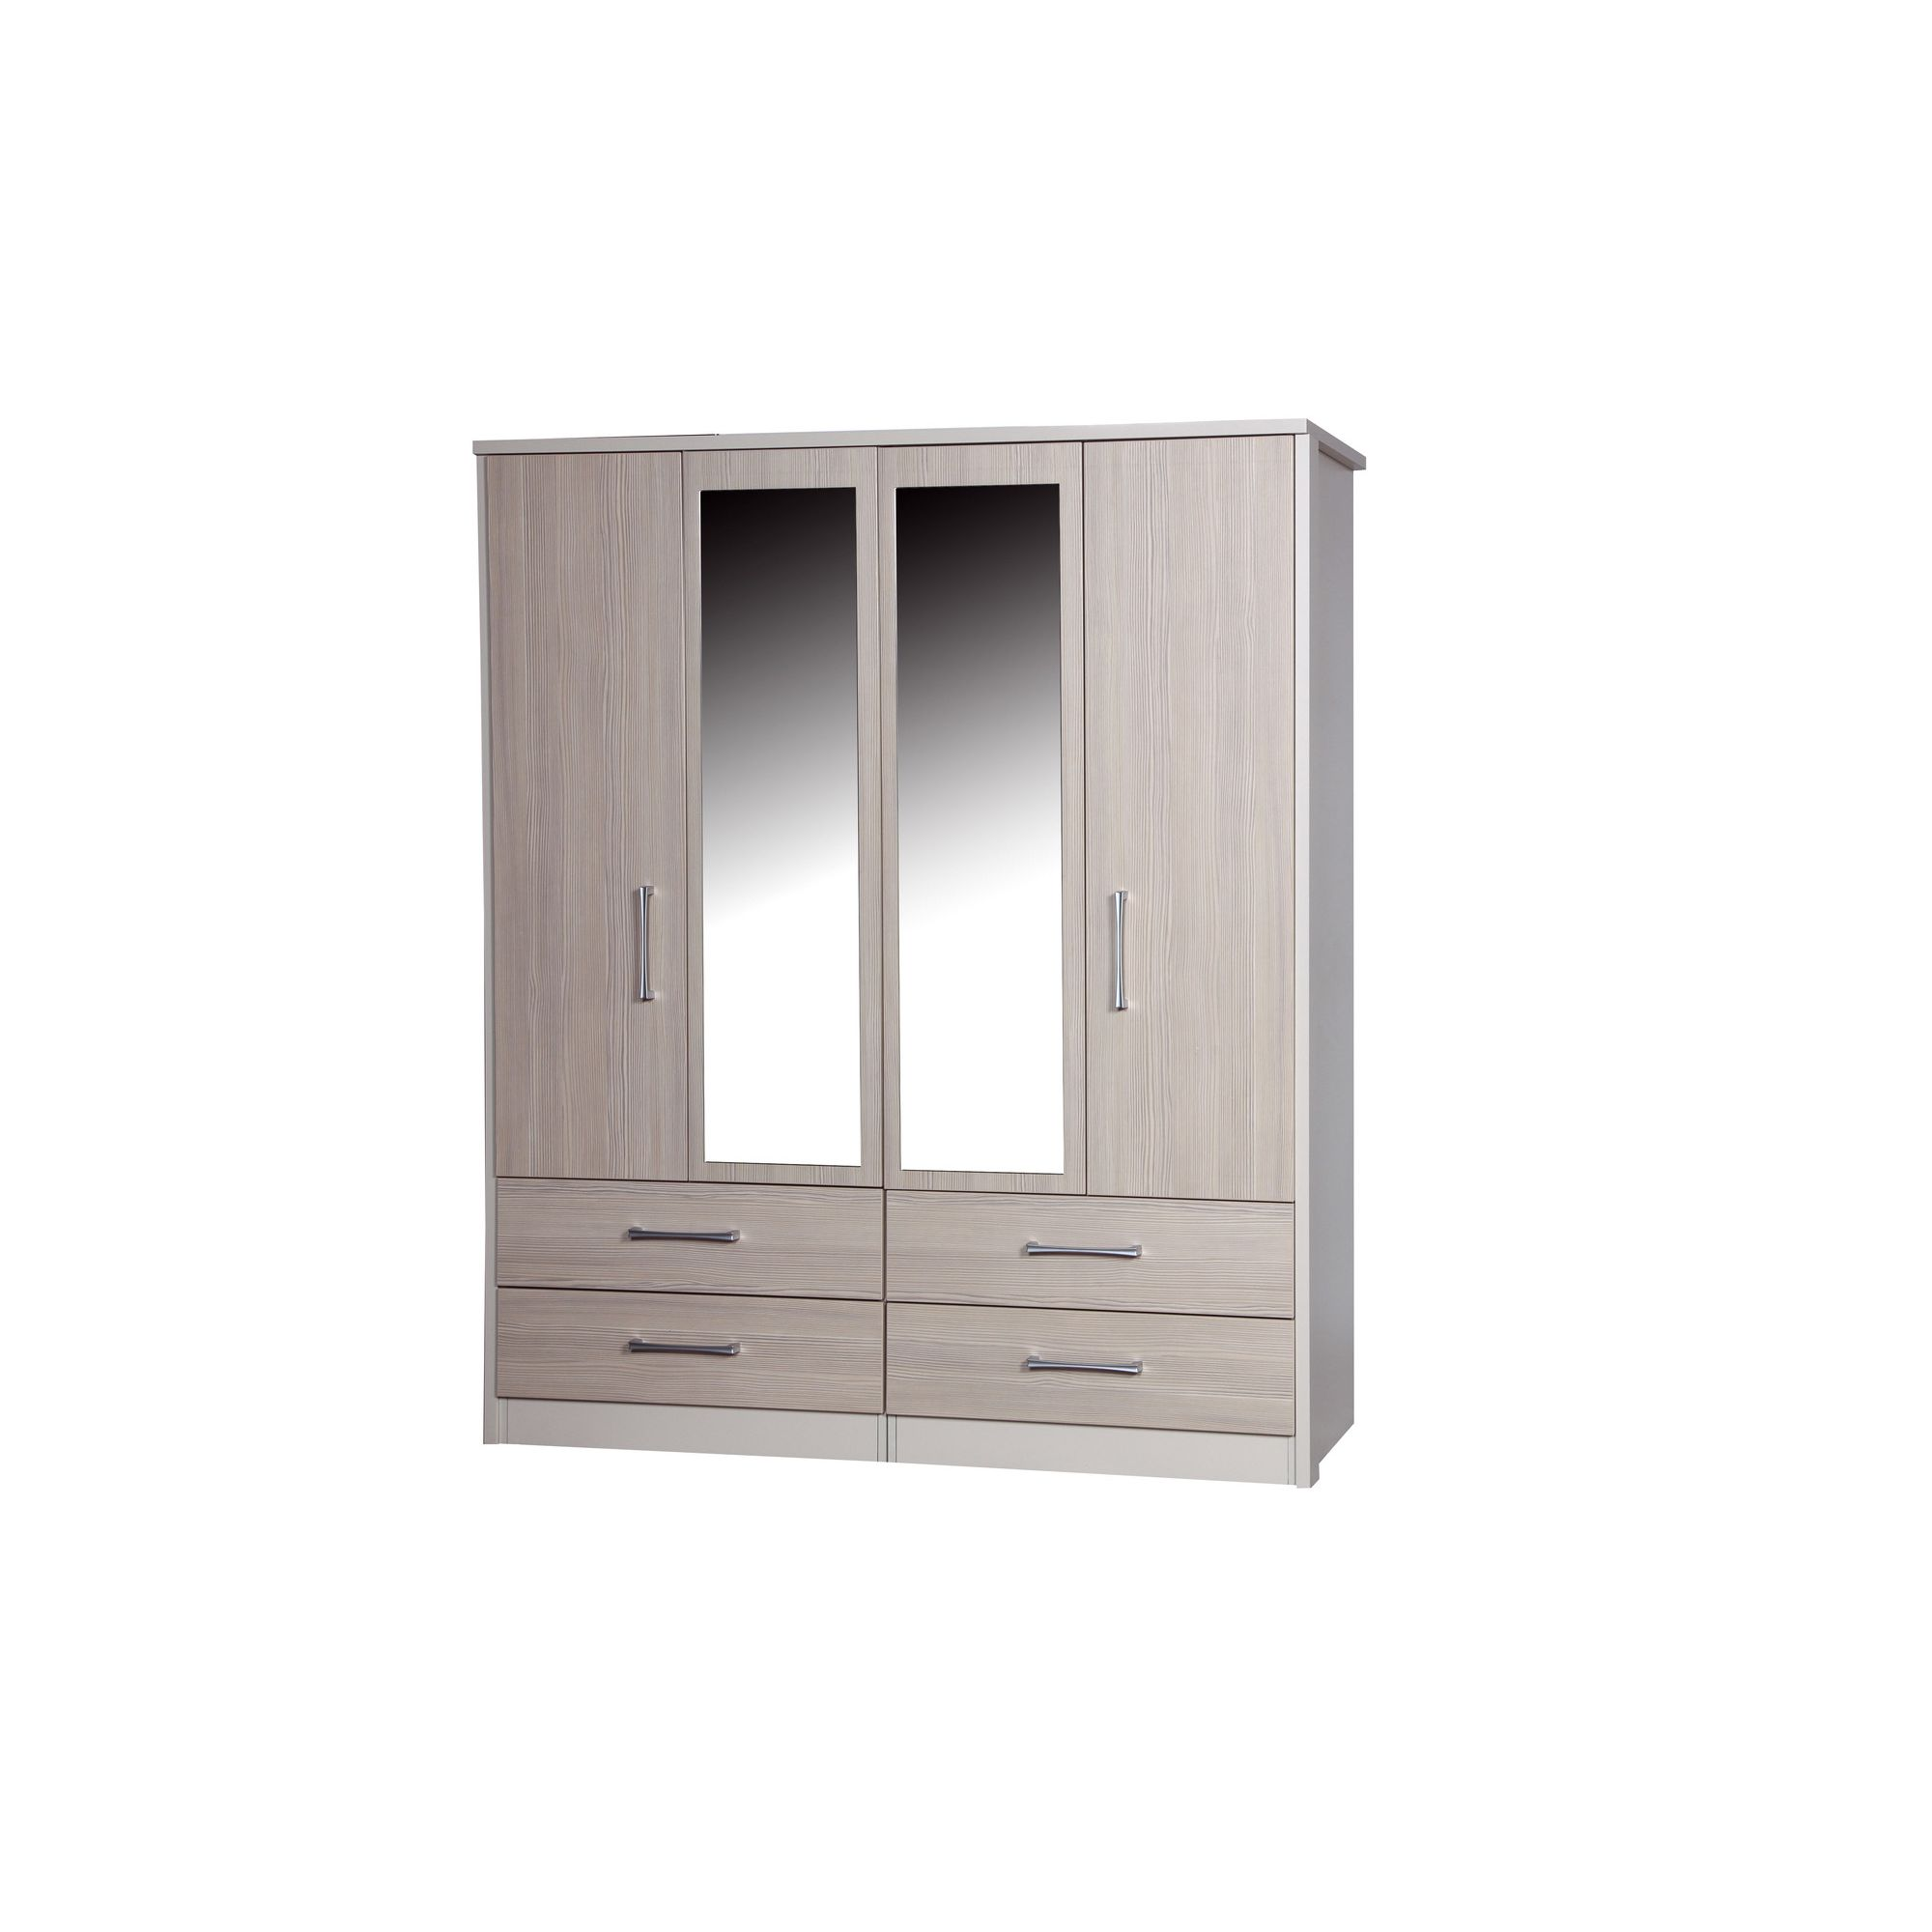 Alto Furniture Avola 4 Door Combi Wardrobe with 2 Mirrors - Cream Carcass With Champagne Avola at Tescos Direct